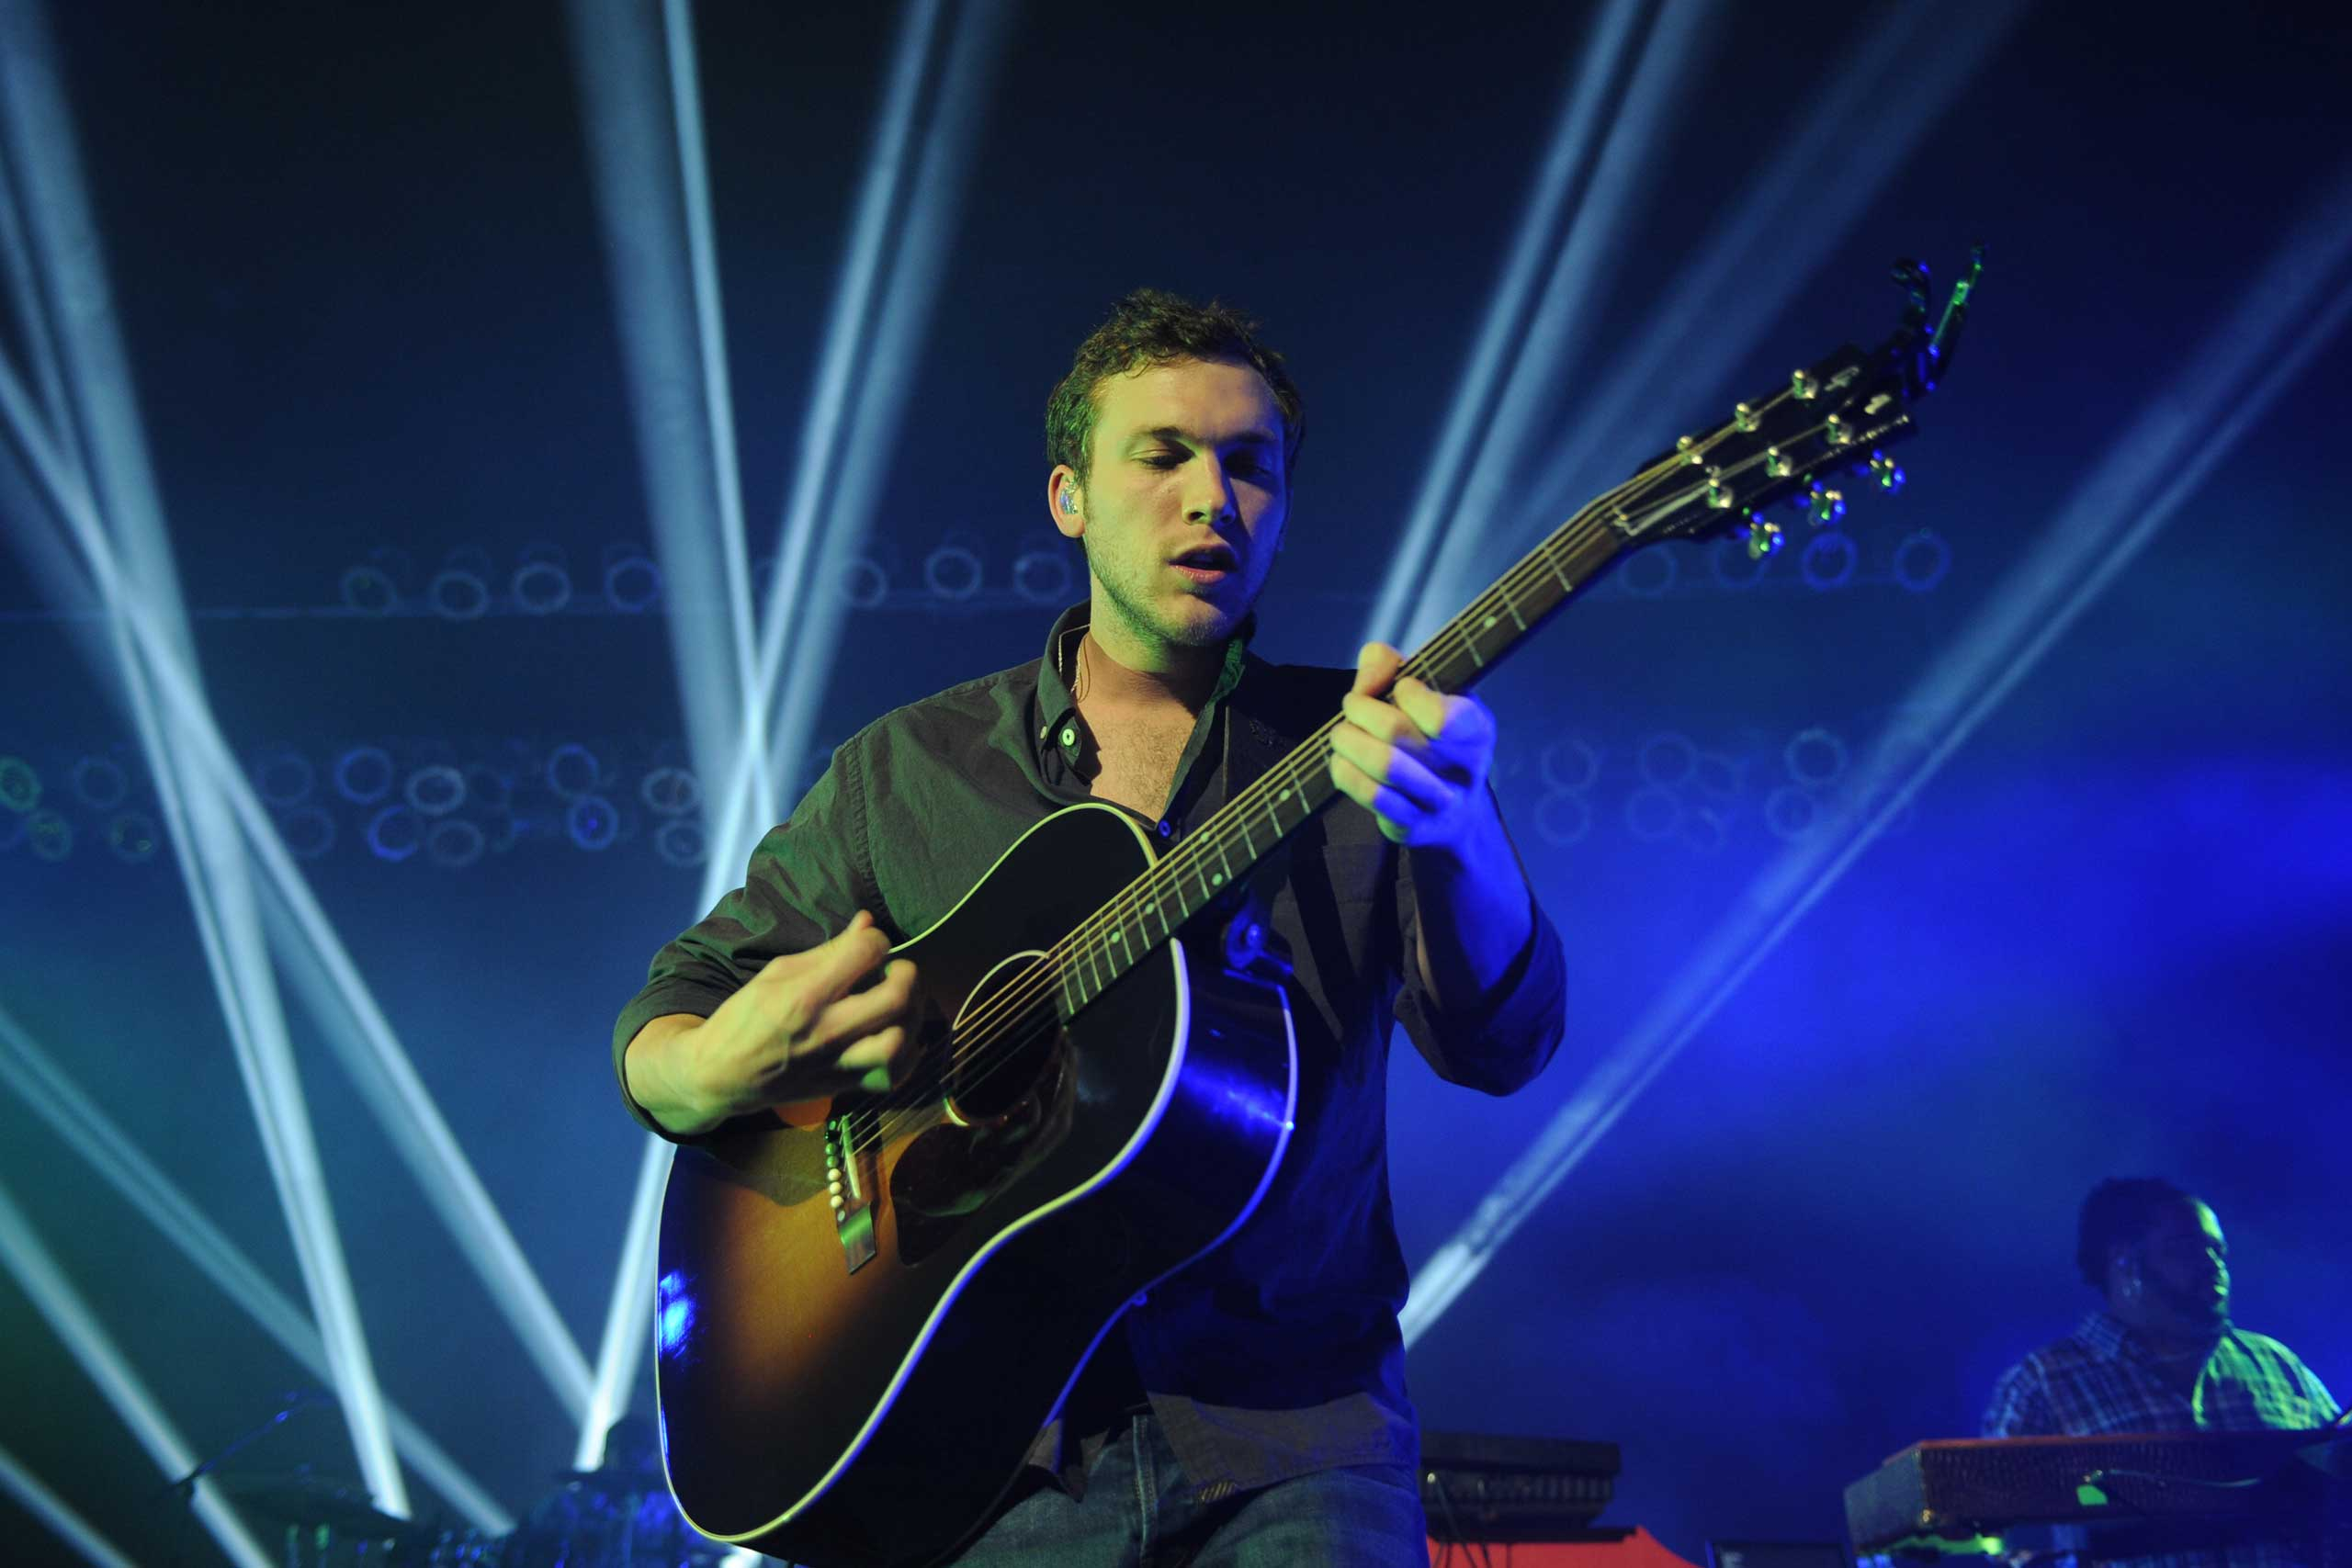 <b>Phillip Phillips</b>, season 11 winner, performs at Hard Rock Live! in the Seminole Hard Rock Hotel &amp; Casino in Hollywood, Fla. on Nov. 15, 2014.